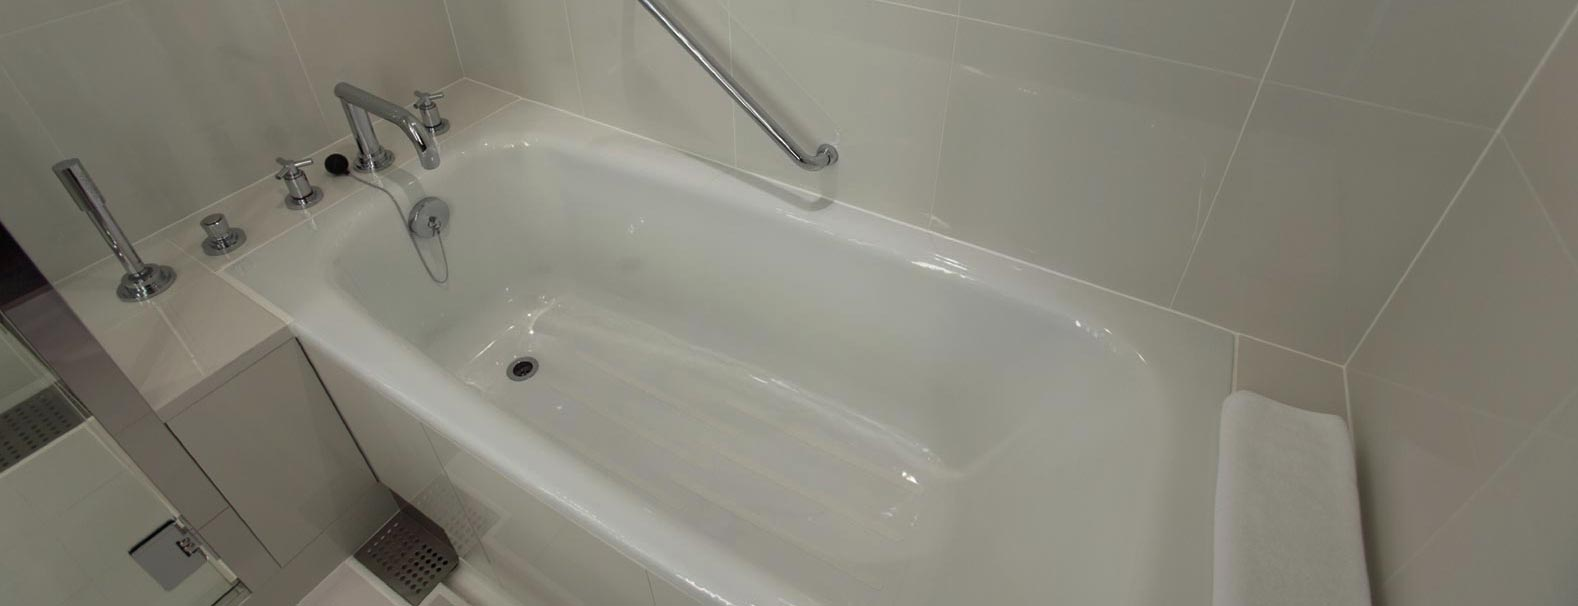 image of a full sized bathtub refinish